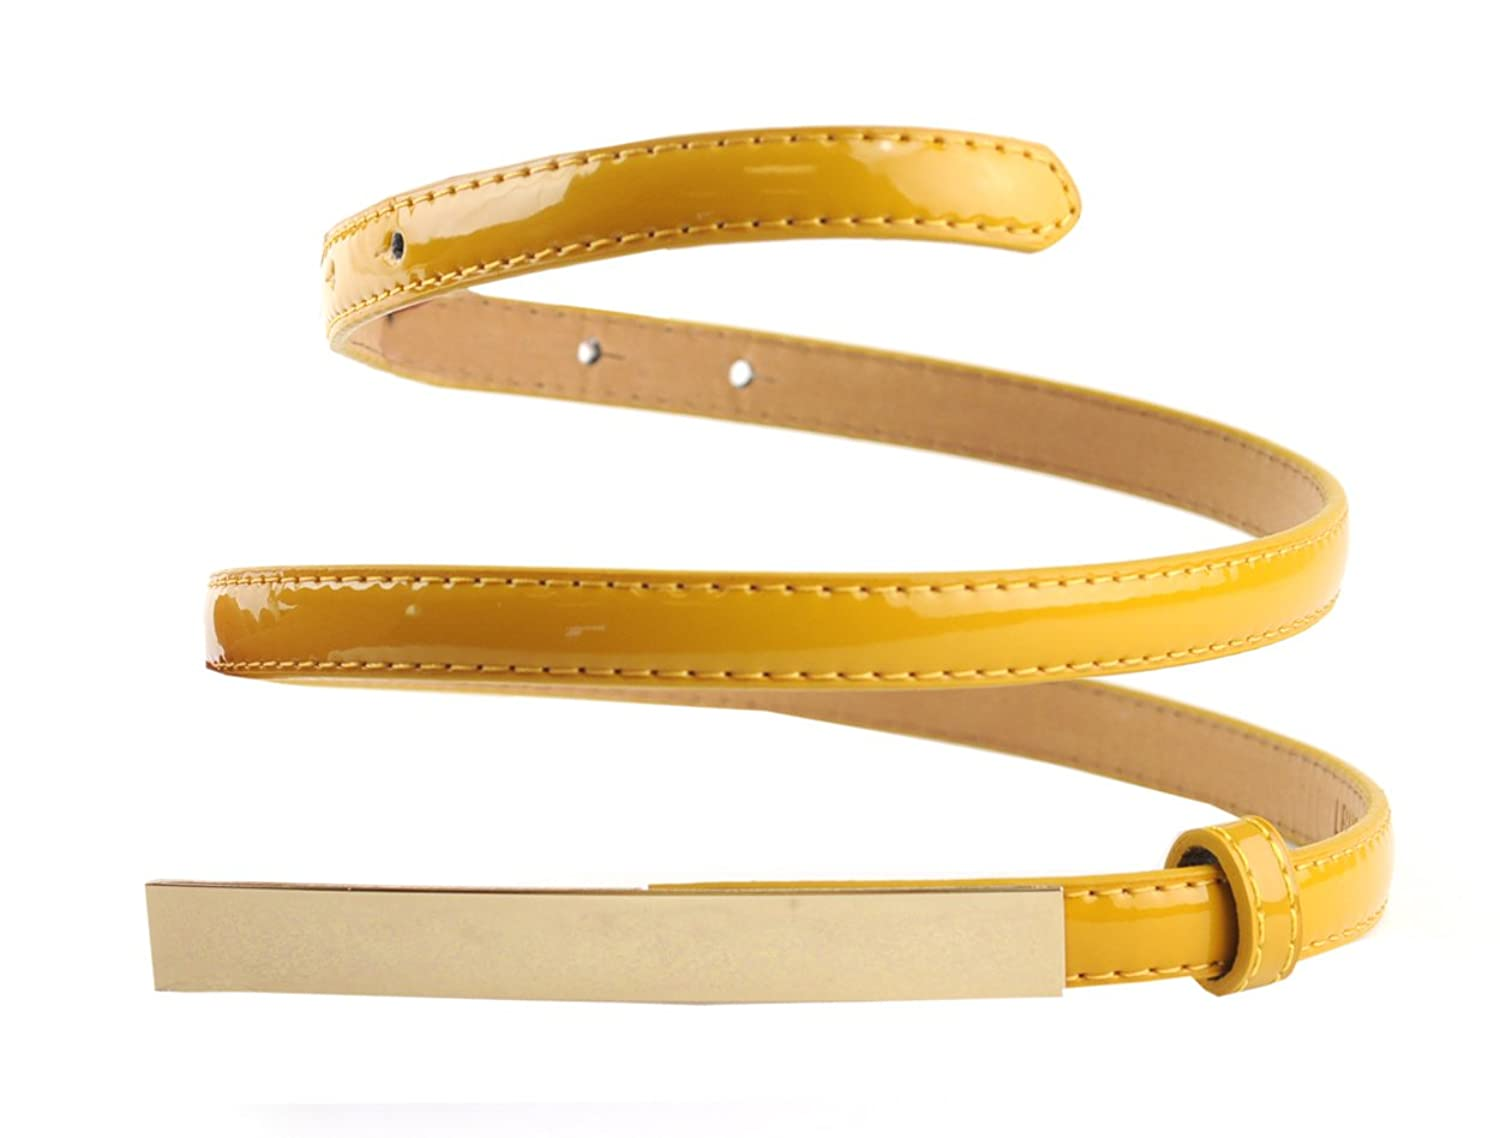 NYFASHION101 Women's Solid Color Skinny Push Pin Belt w/ Gold-Tone Metal Accent